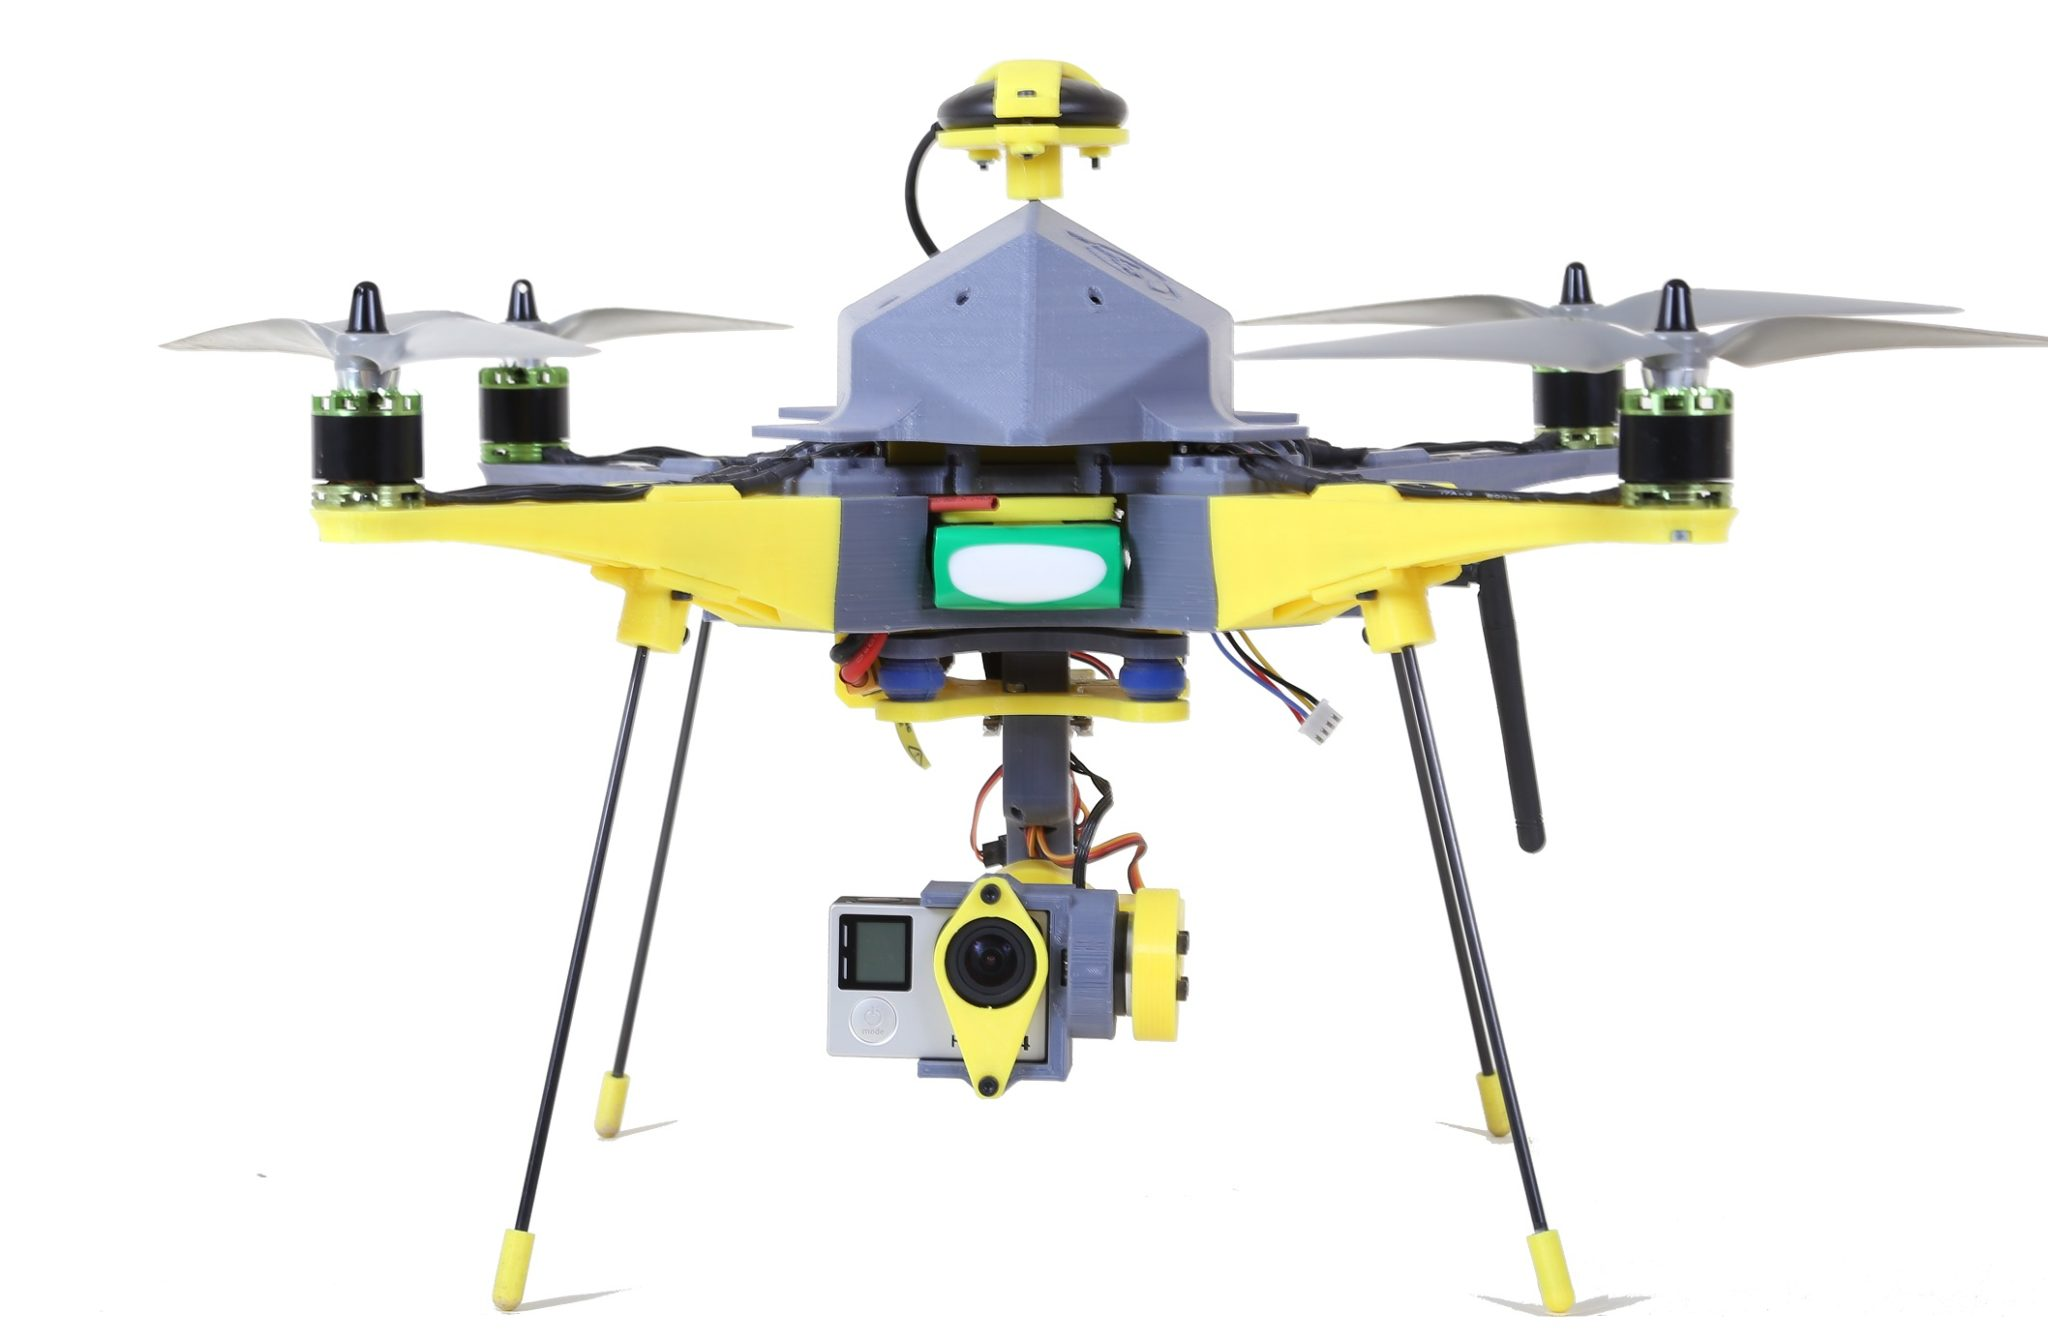 Mosquito: The customizable, modular, 3D-printed drone - sUAS News - The Business of Drones